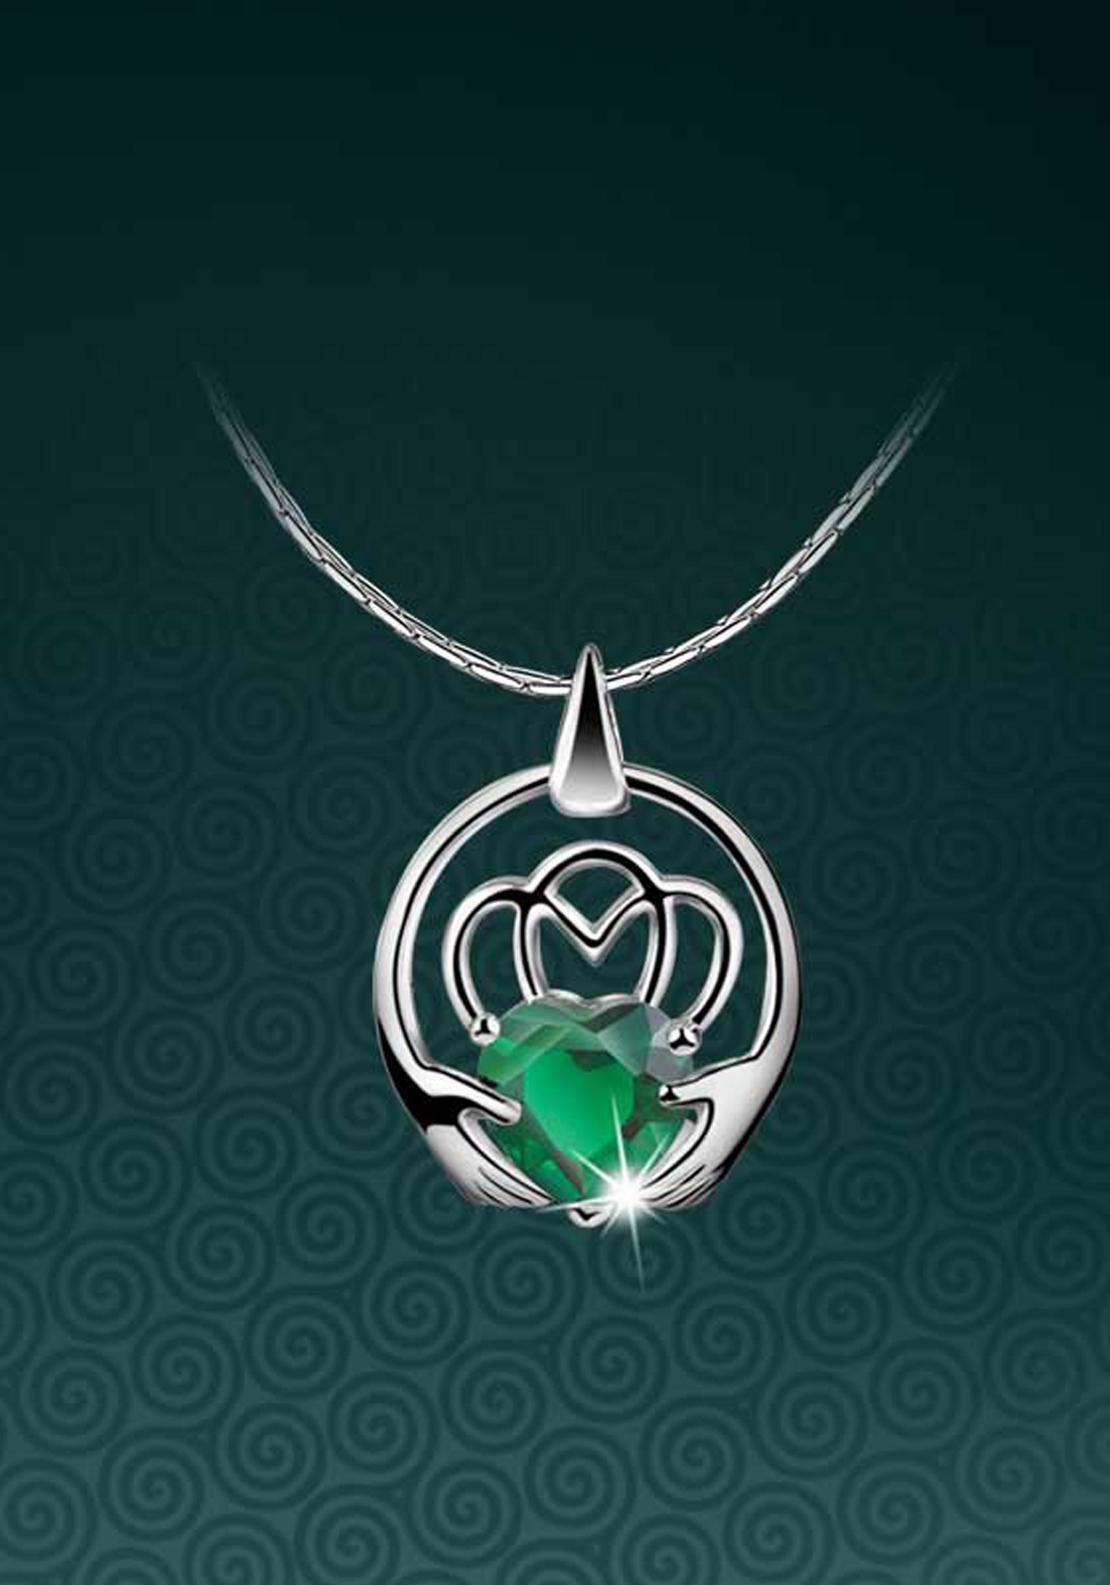 Newbridge Maureen O'Hara Claddagh Pendant, Silver / Green